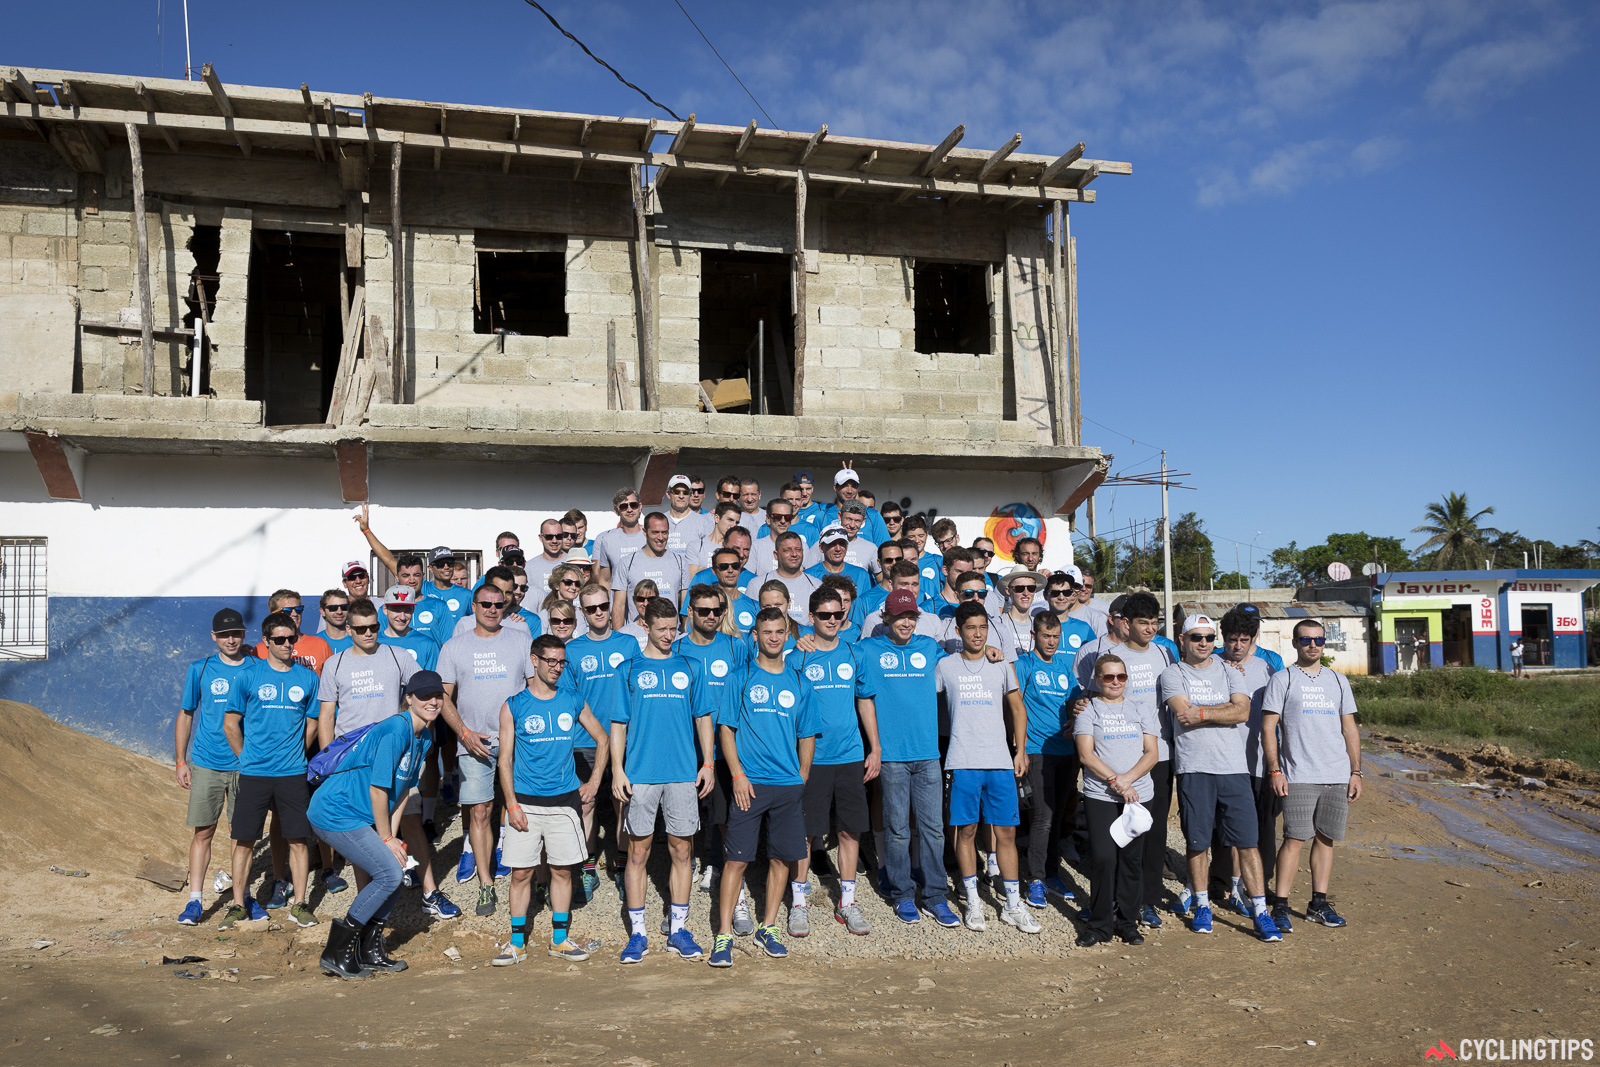 Team Novo Nordisk at the start of the two-day house build in the village of Batey Esperanza in the Dominican Republic. The build was the 2016 off-season team bonding exercise and followed a smaller one a year earlier in Mexico.